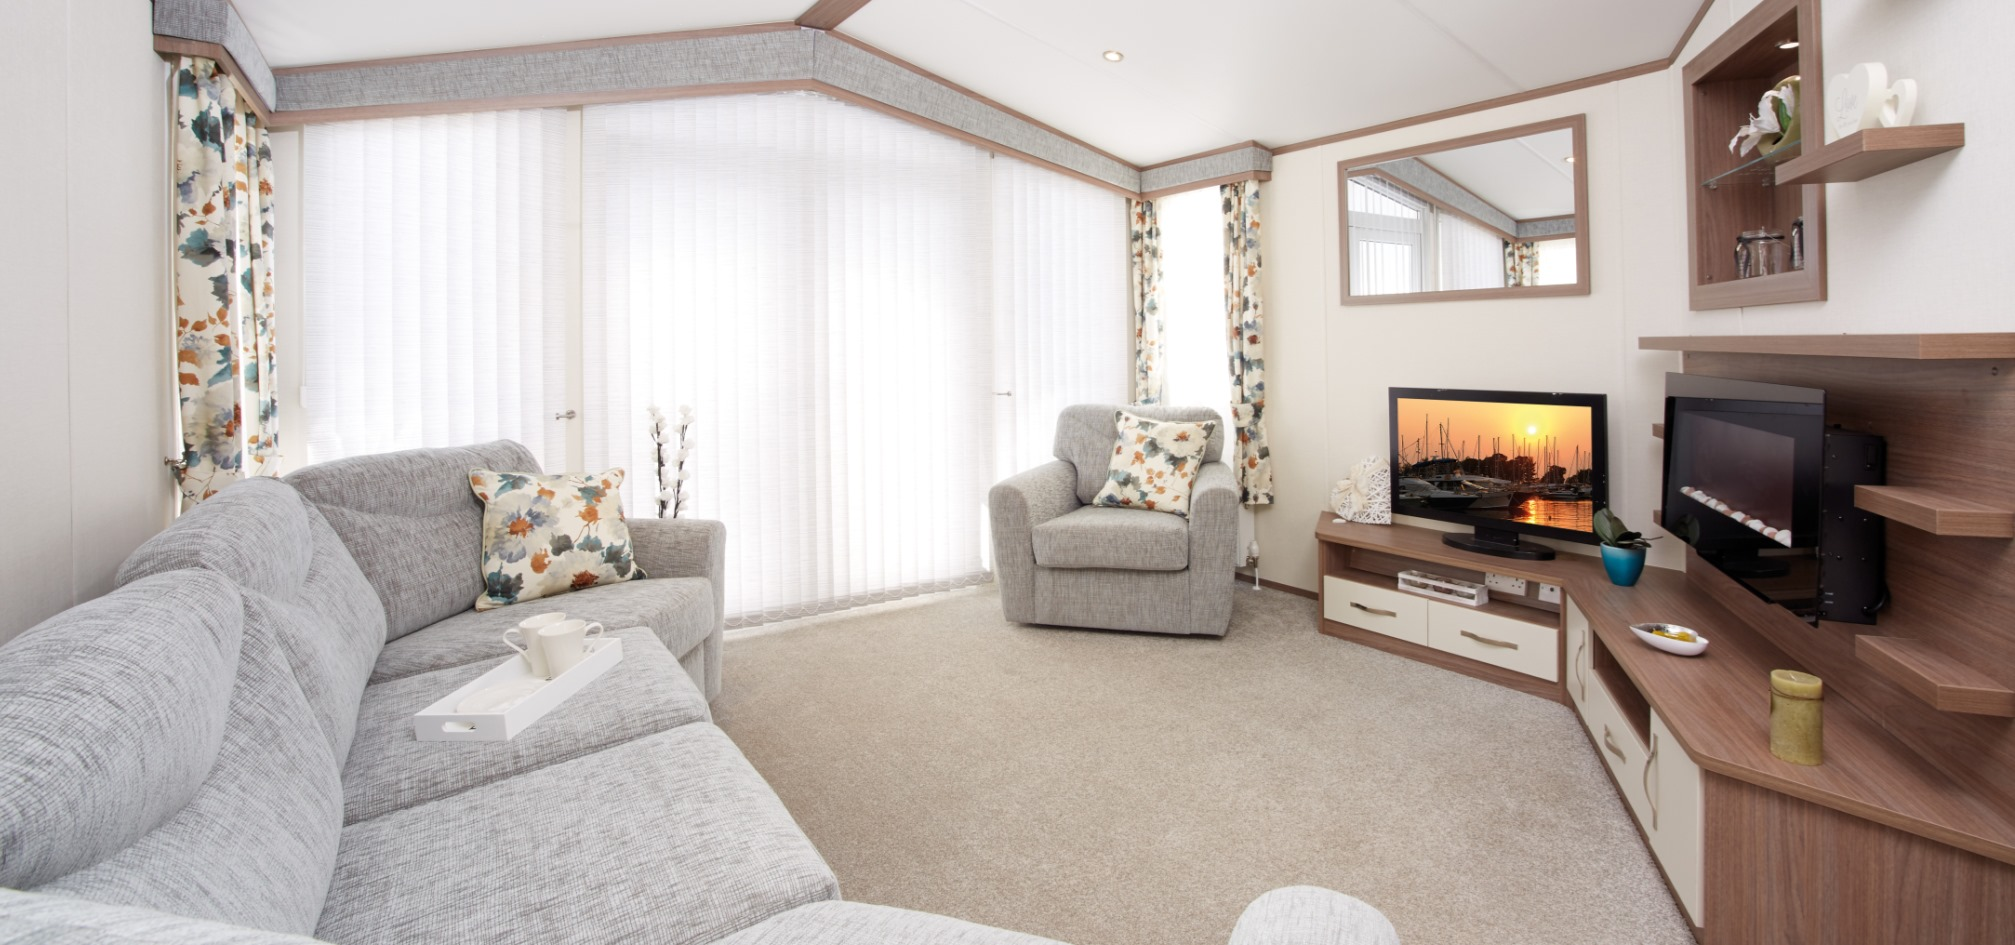 holiday home with grey sofas and colourful curtains in a spade shaped room